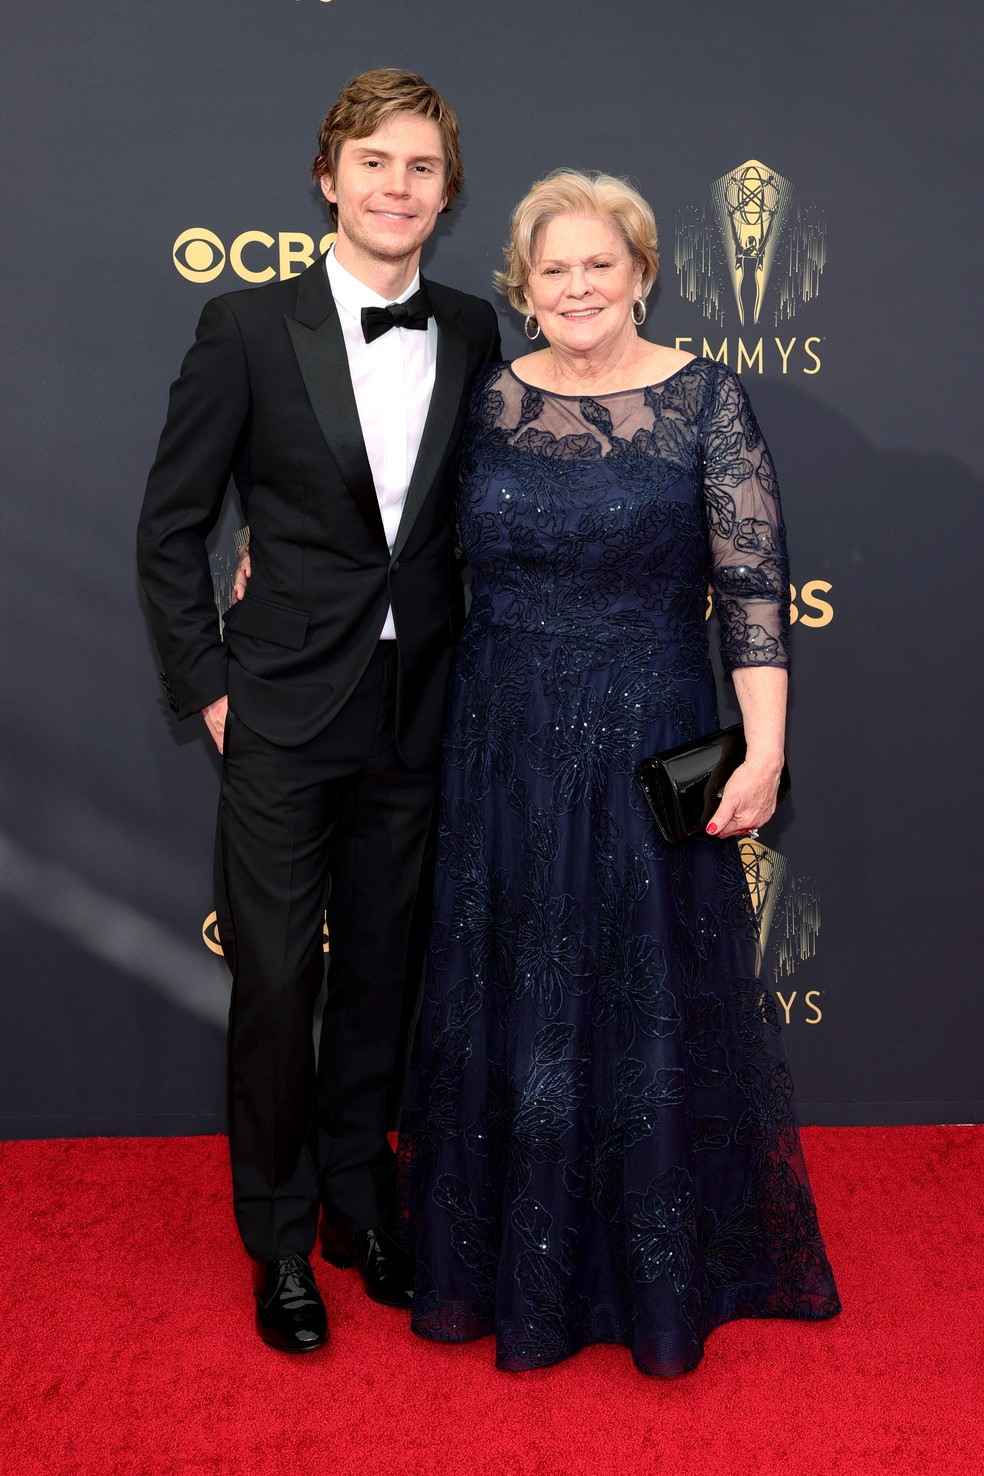 Evan e Julie Peters chegam ao Emmy 2021 — Foto: Rich Fury/Getty Images North America/Getty Images via AFP